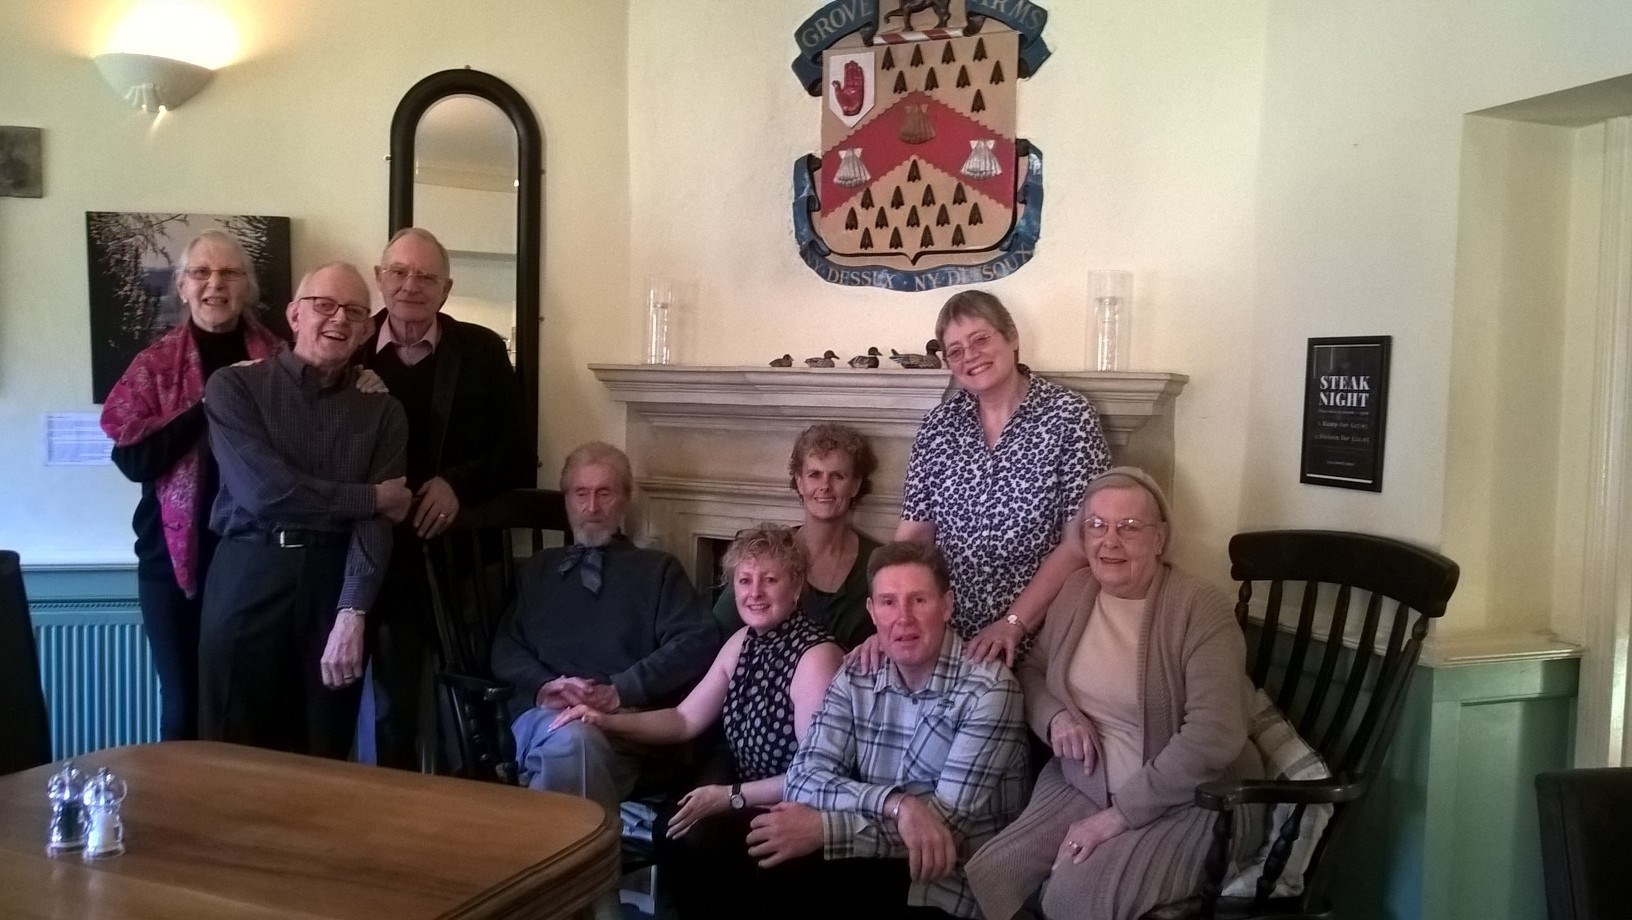 Happy memories with the Ball family, Jenny will be sadly missed. Lynne and Richard.